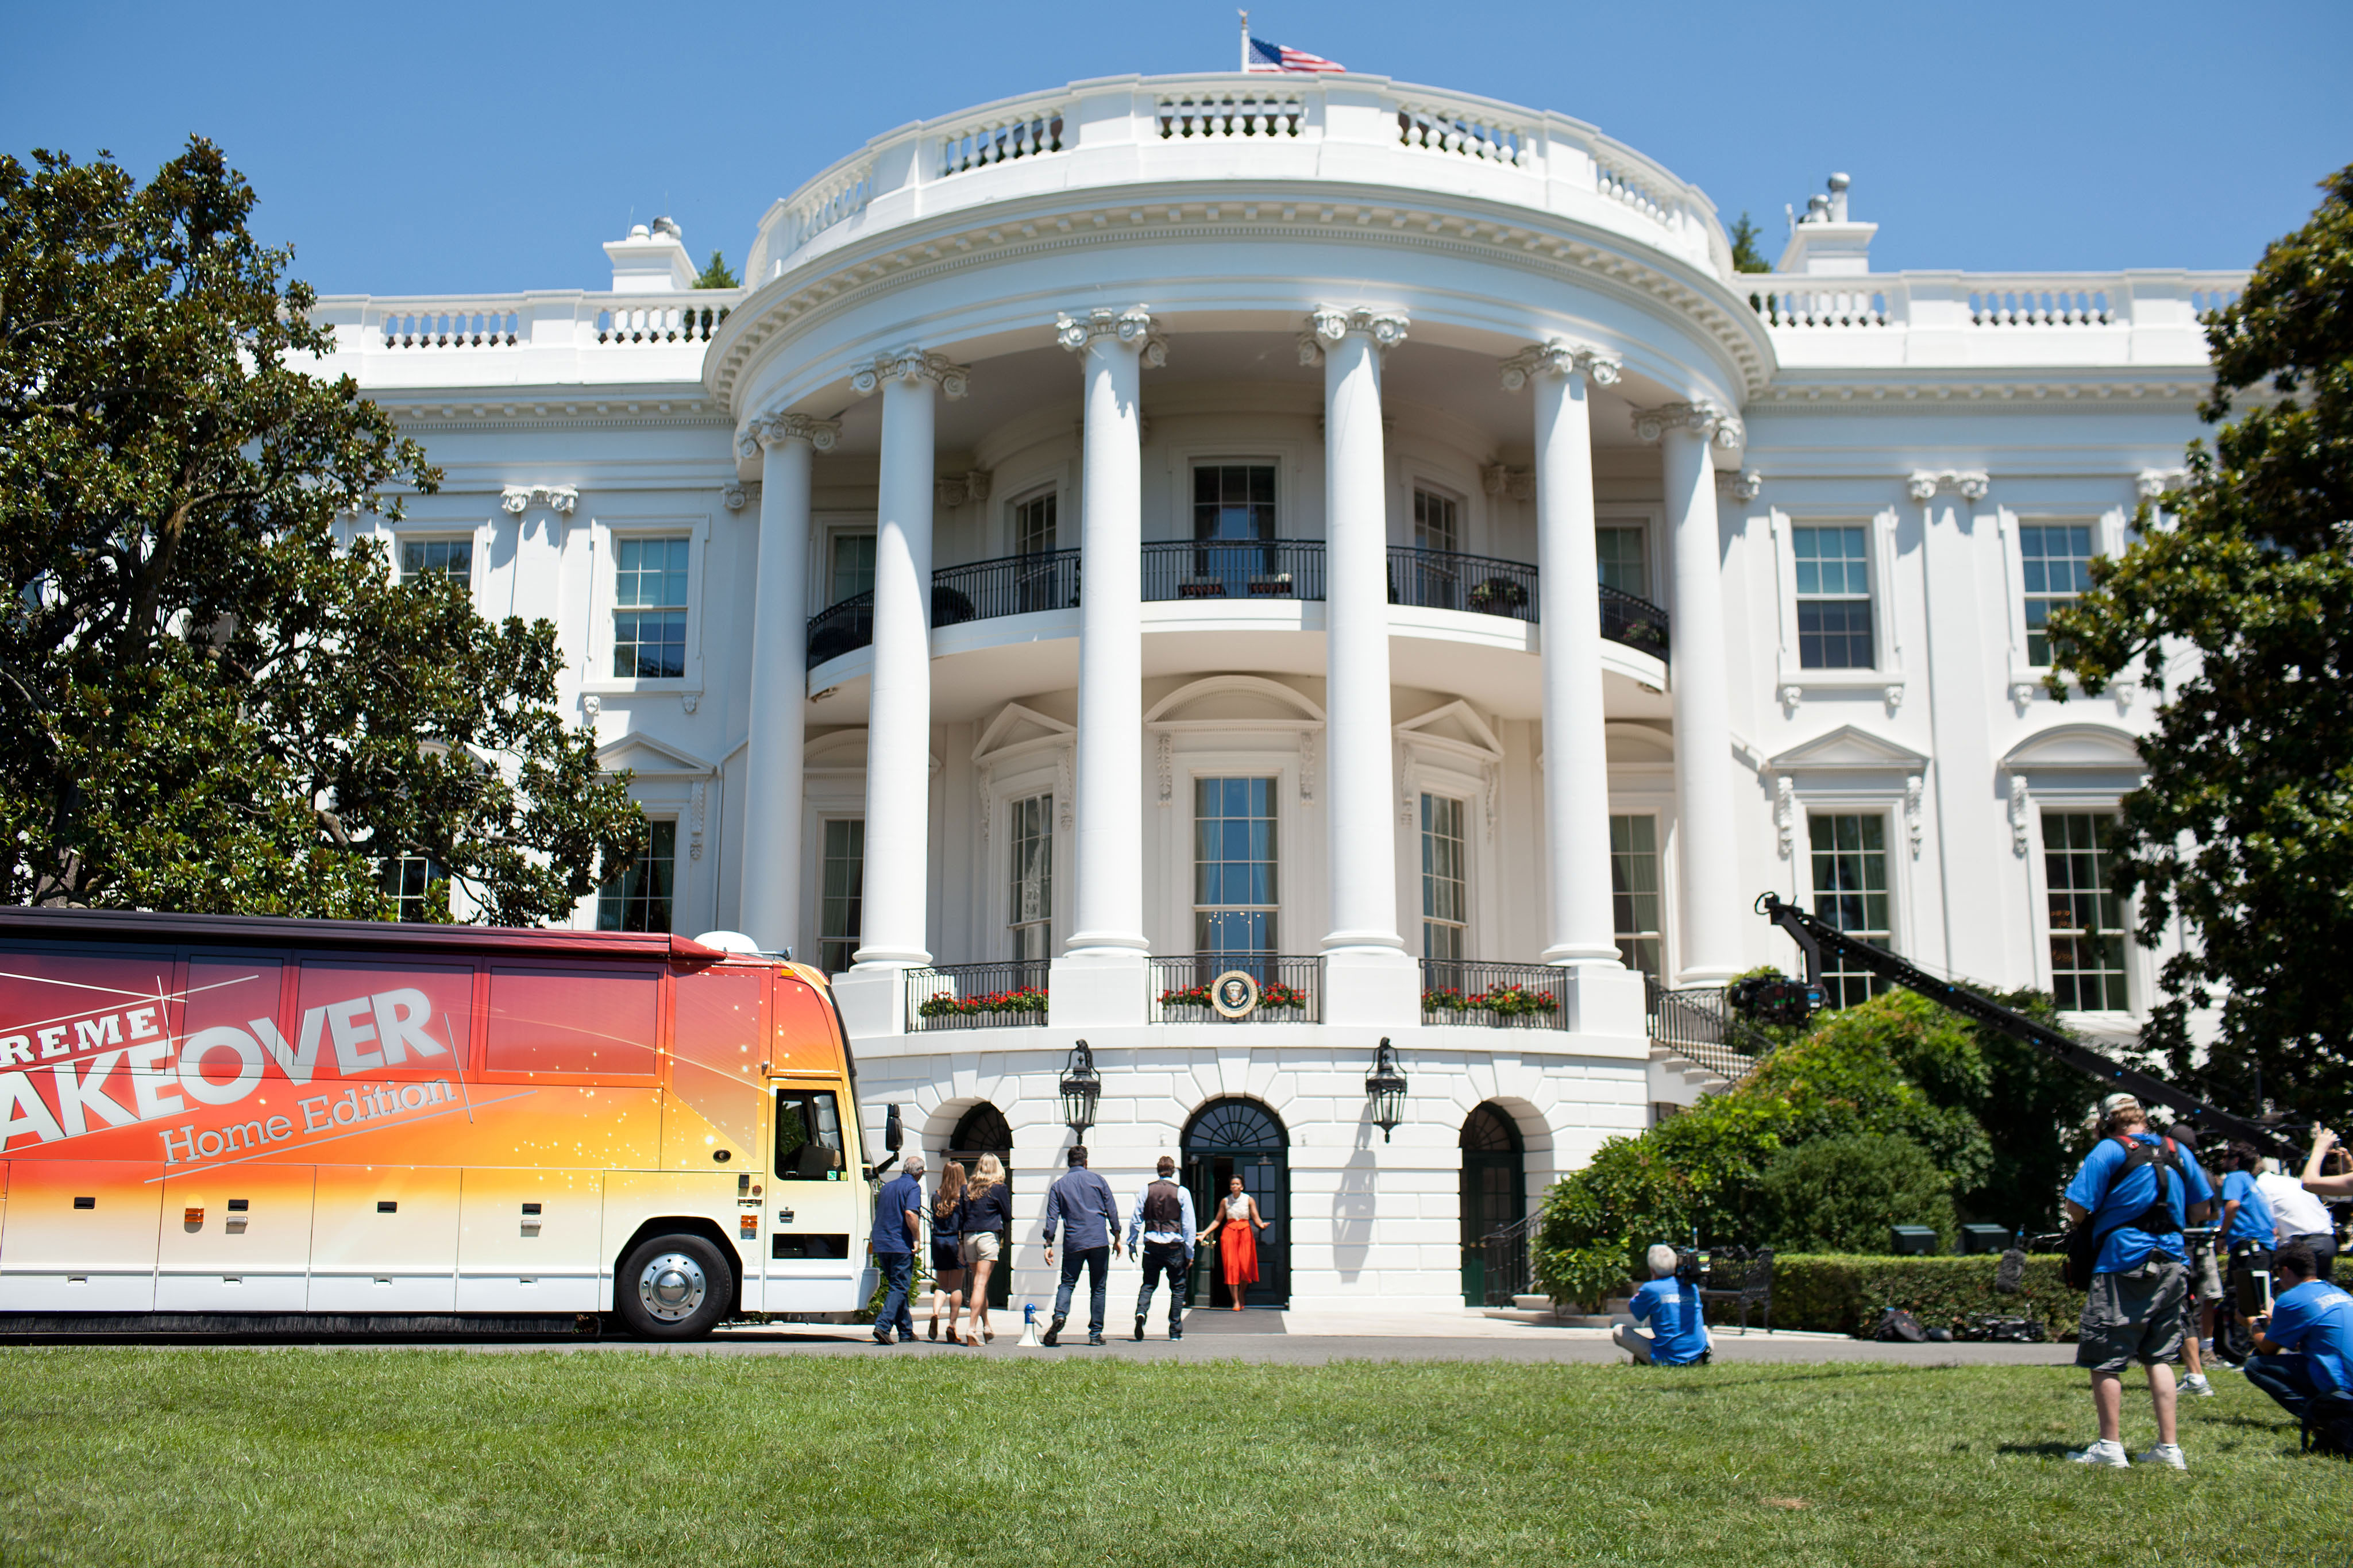 of an extreme makeover home edition episode white house